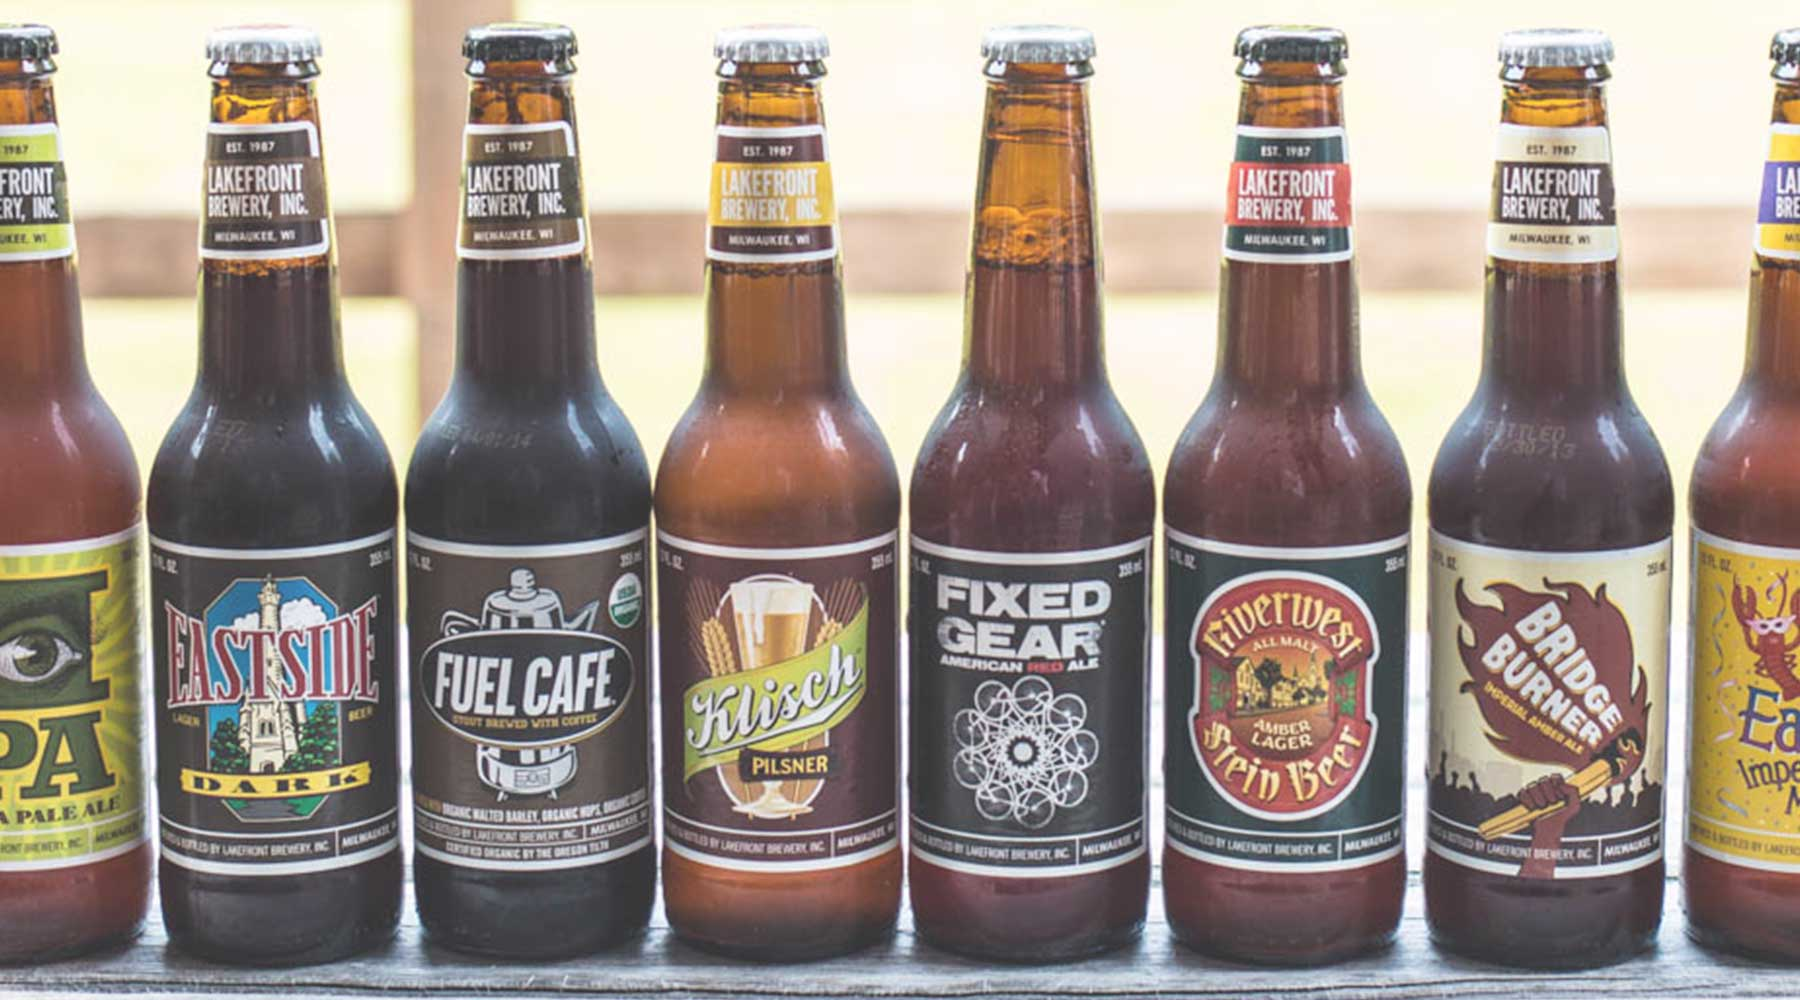 Lakefront Brewery | Just Wine